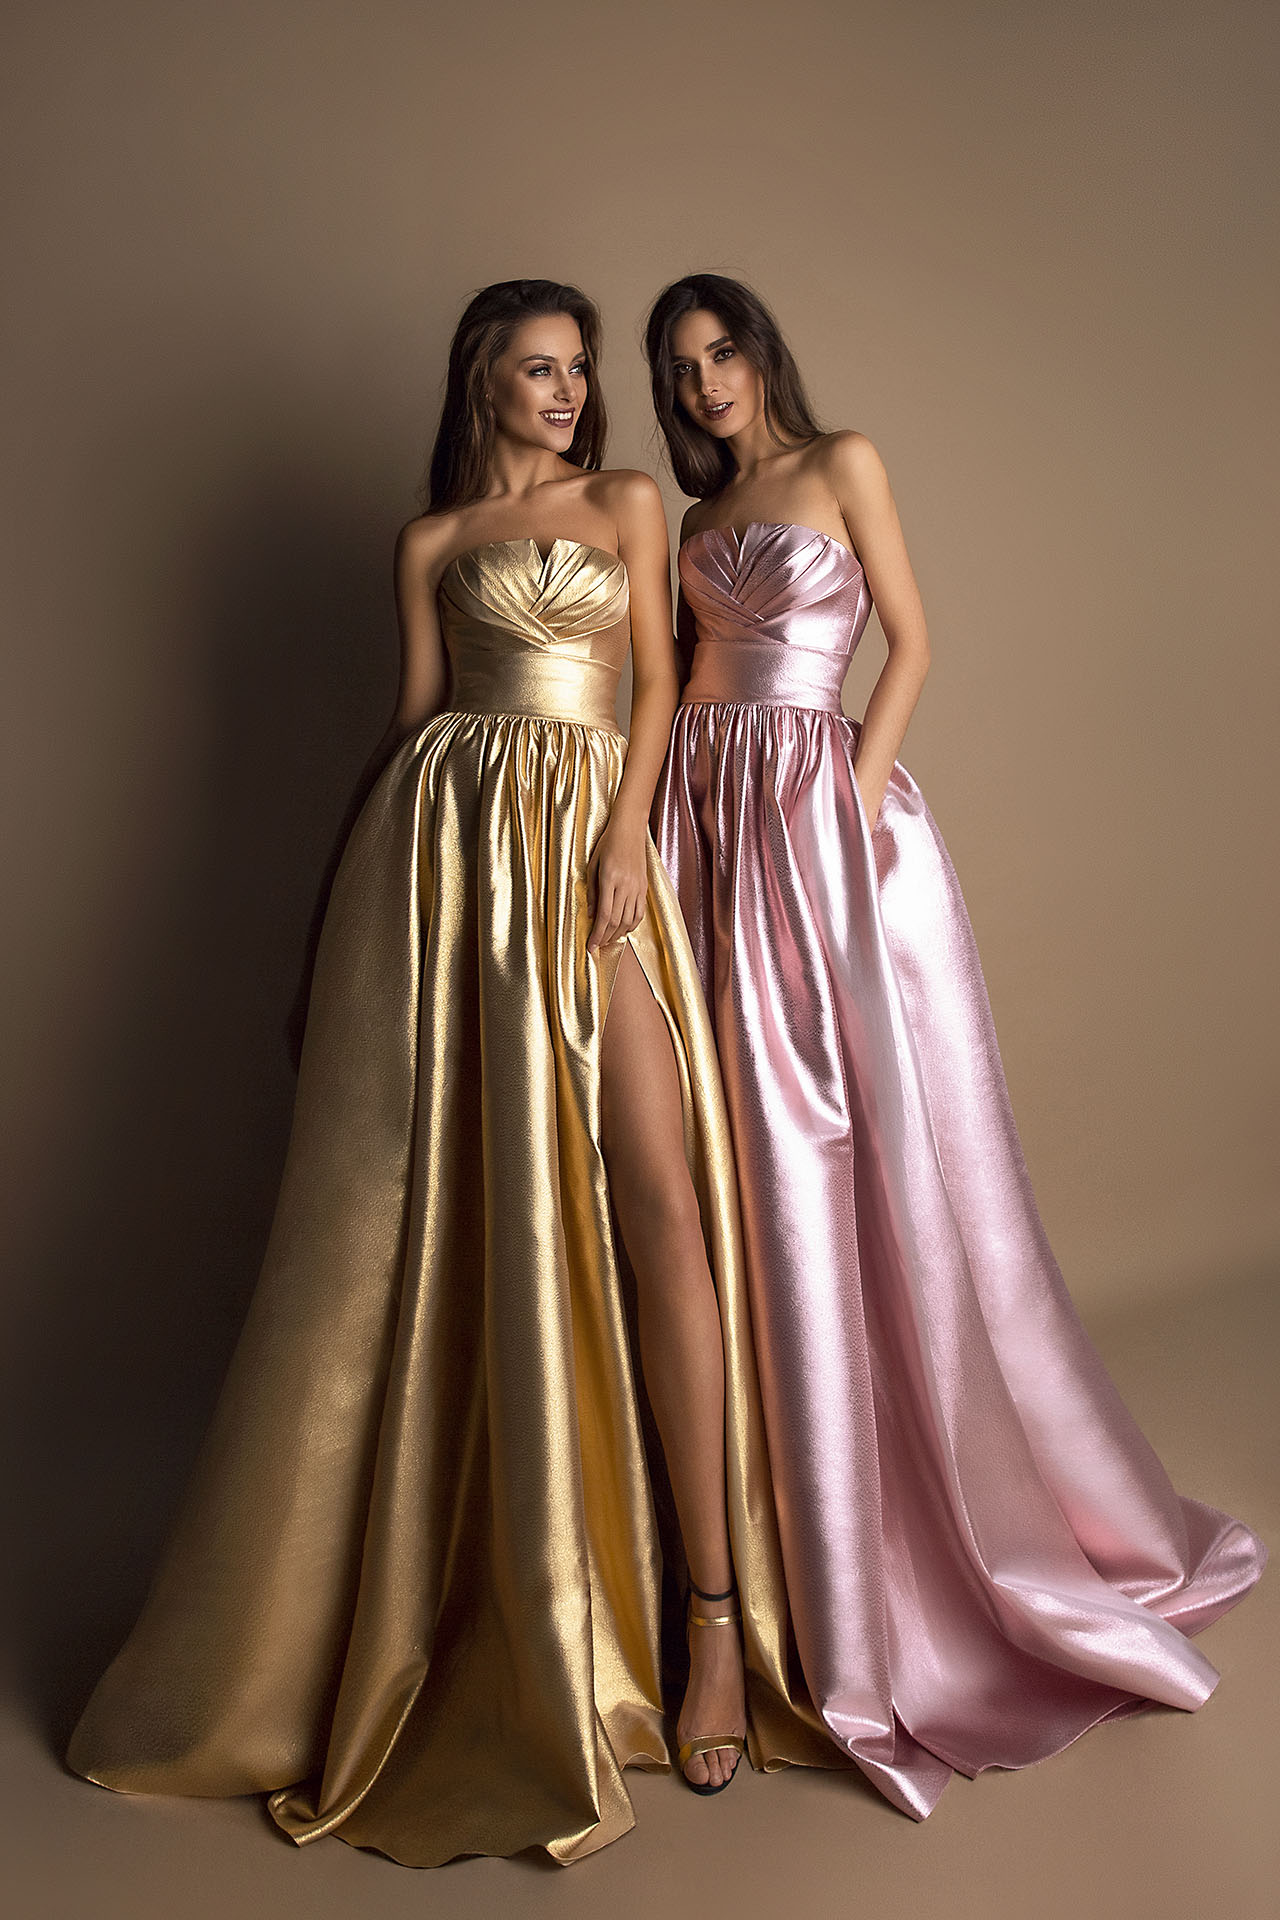 Evening Dresses 1610 Silhouette  A Line  Color  Pink  Gold  Neckline  Straight  Sleeves  Sleeveless  Train  No train